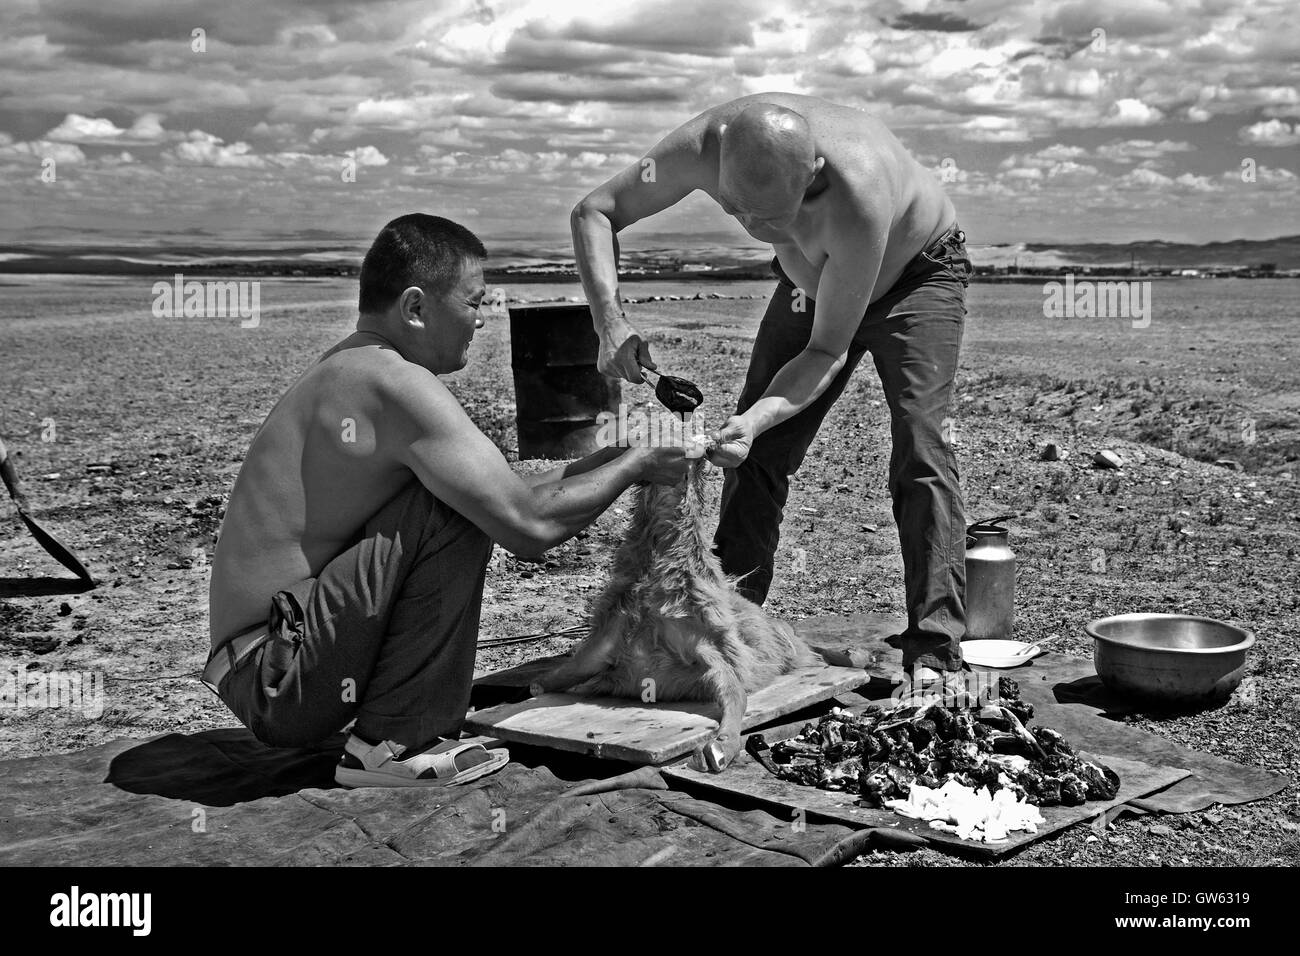 In an endless Altai plain cooking a goat in 'Bodog' style, inserting hot stones in the carcass of the animal. - Stock Image